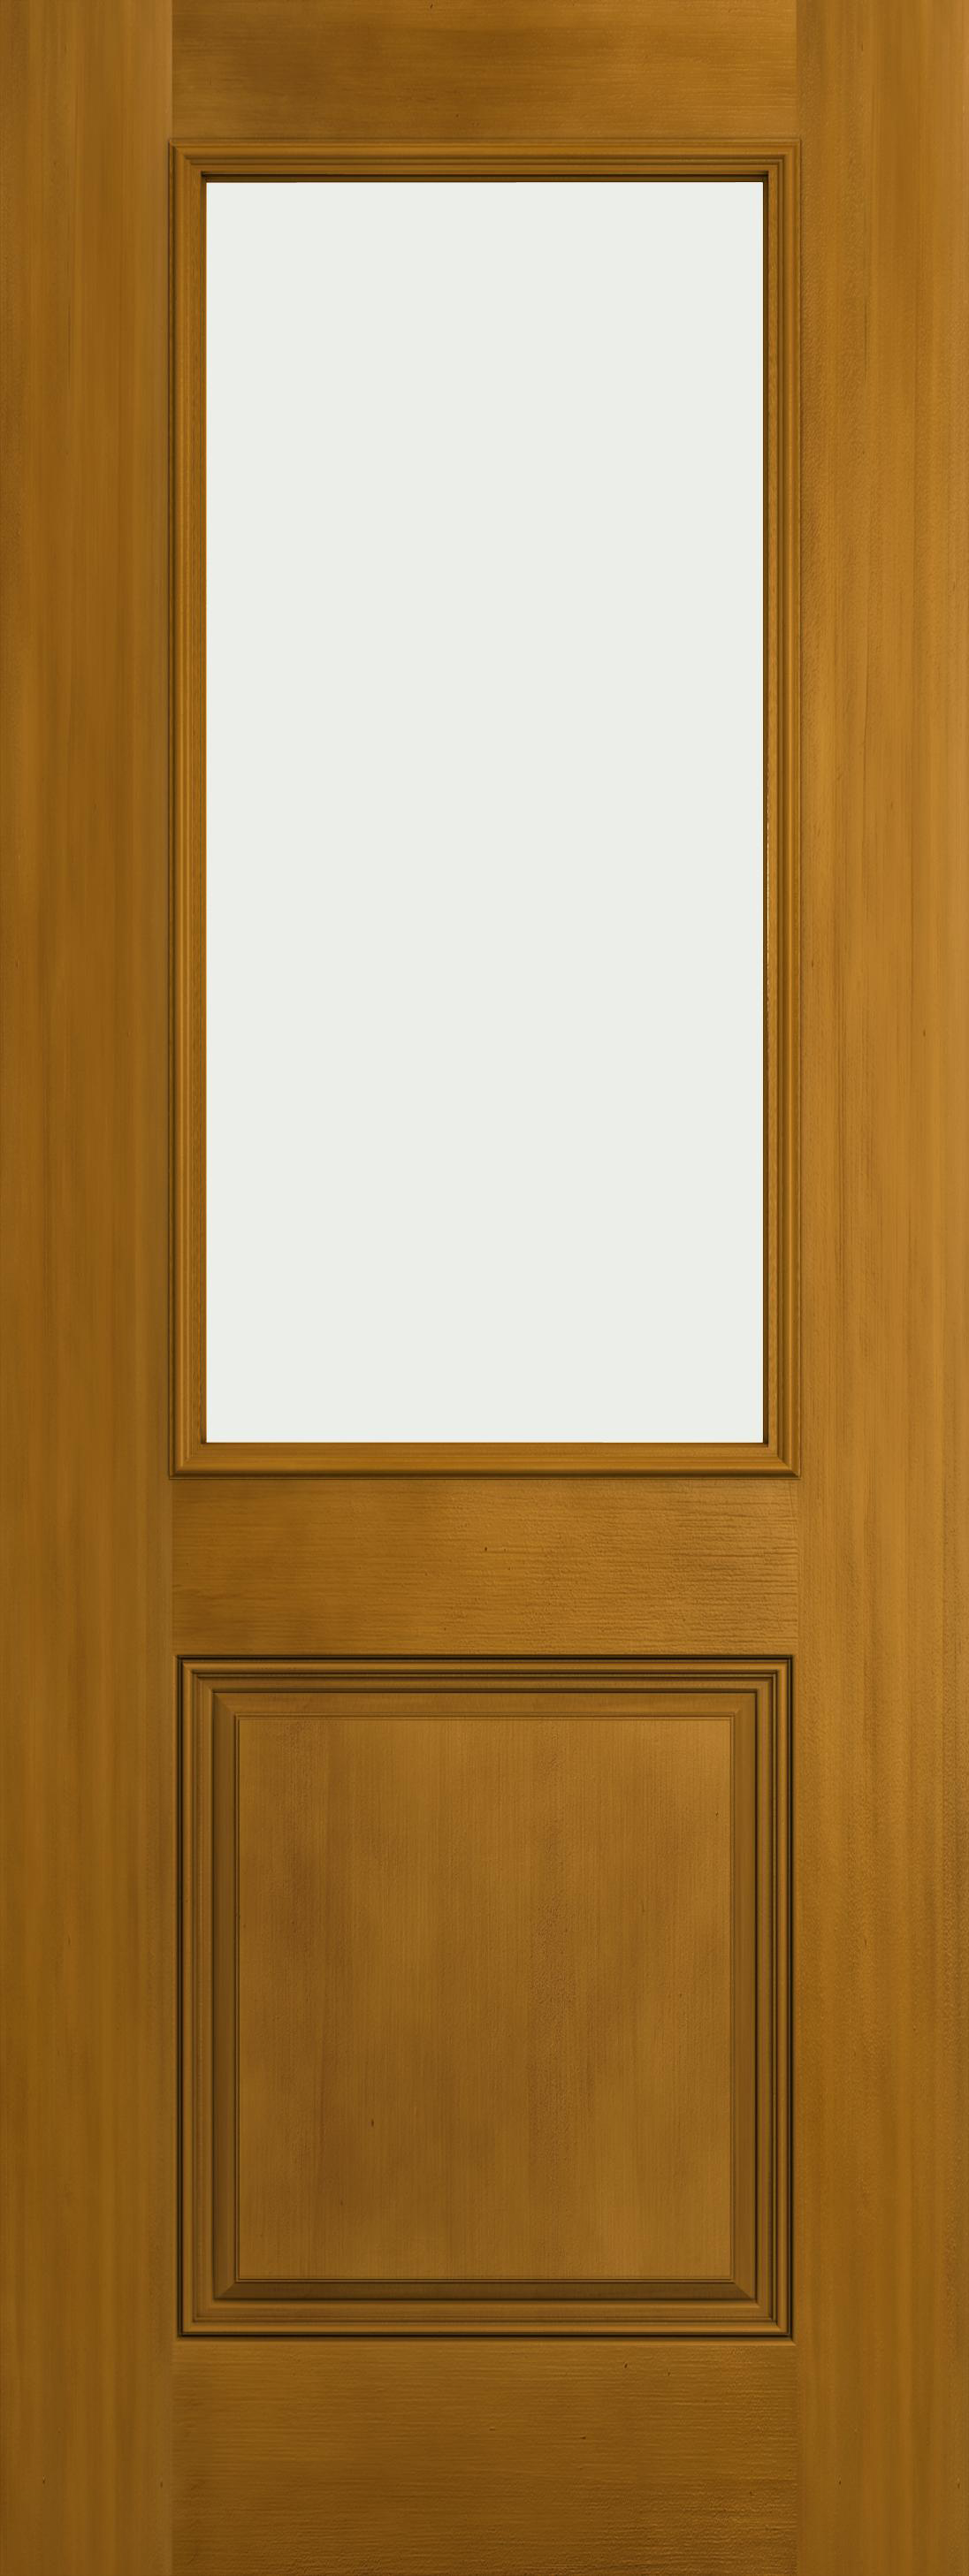 Design-Pro Fiberglass Glass Panel Exterior Door | JELD-WEN Windows ...